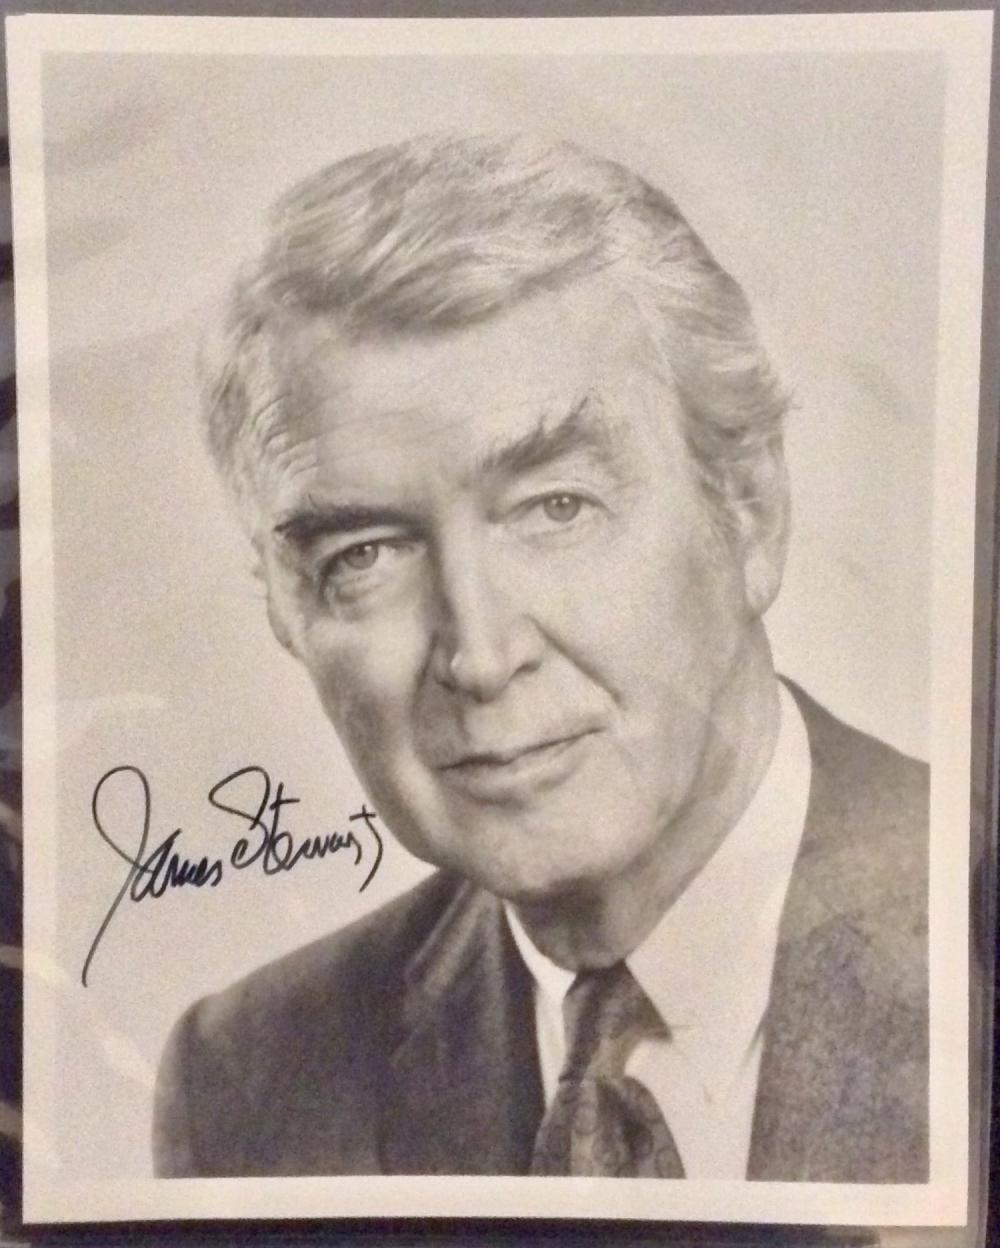 James Stewart 8X10 Autographed Photo of Noted American Actor James Stewart